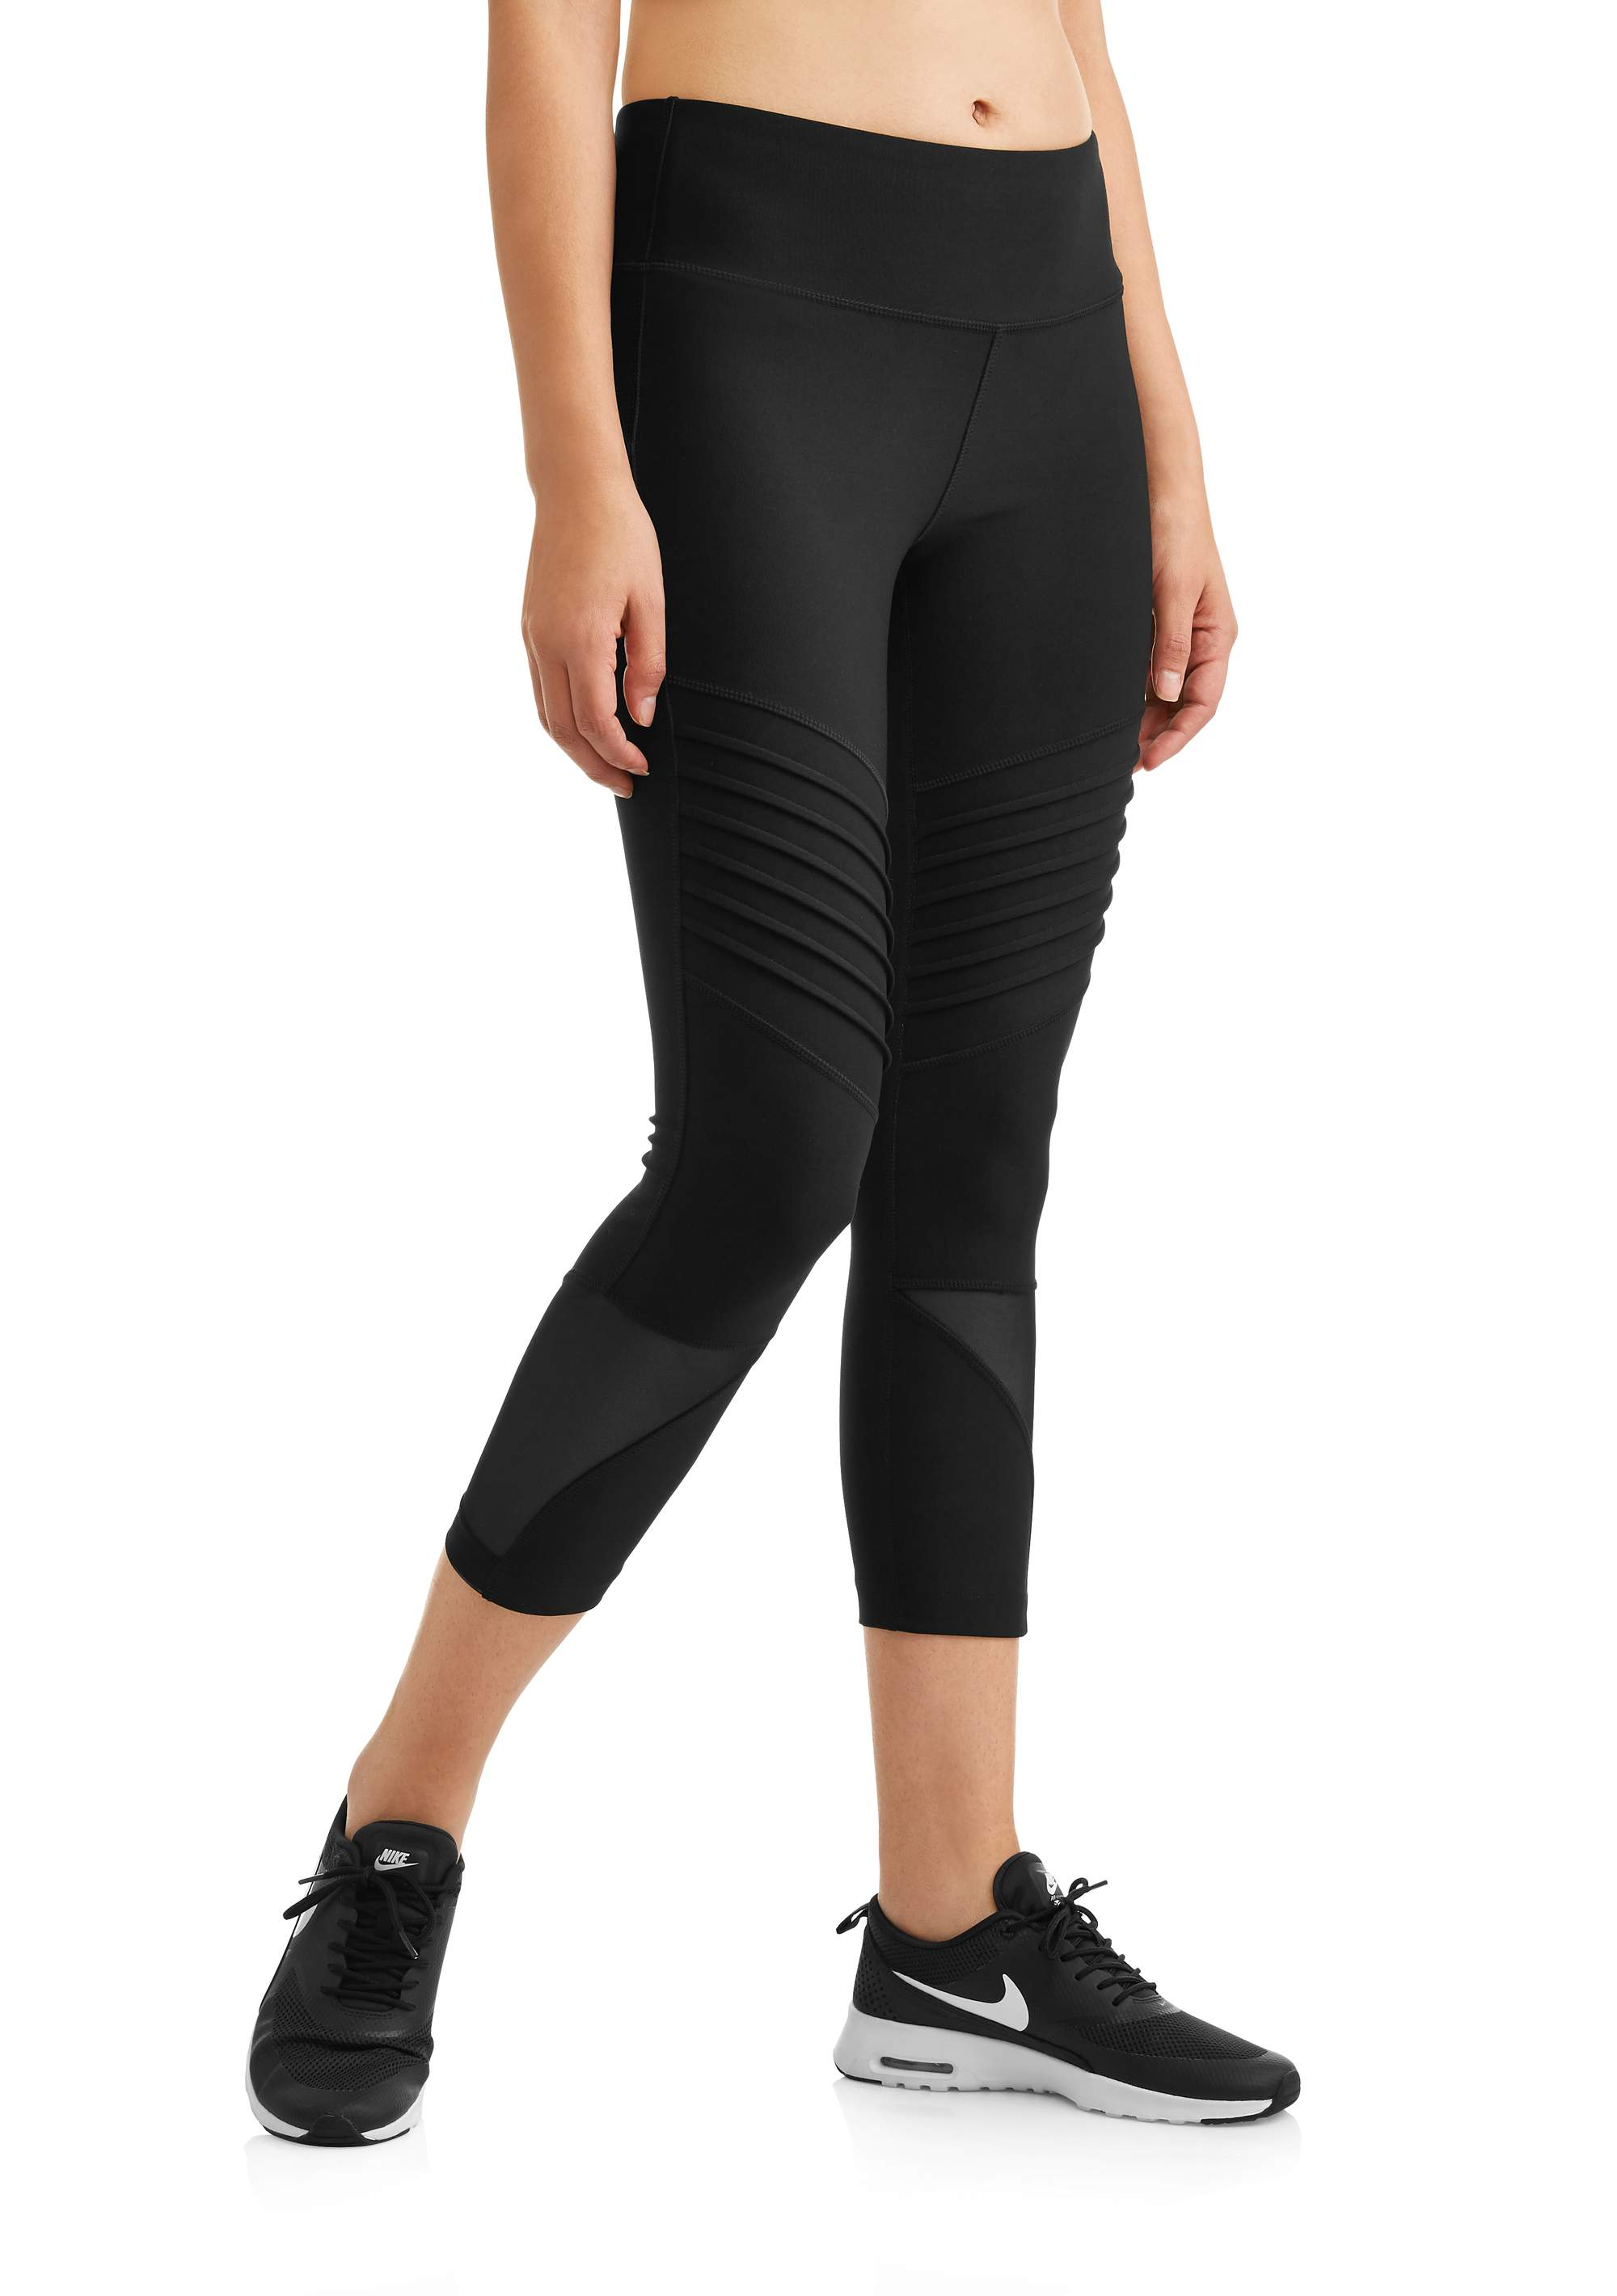 6ff5225985df5 Avia Women's Core Active Moto Mesh Performance Capri – Walmart ...